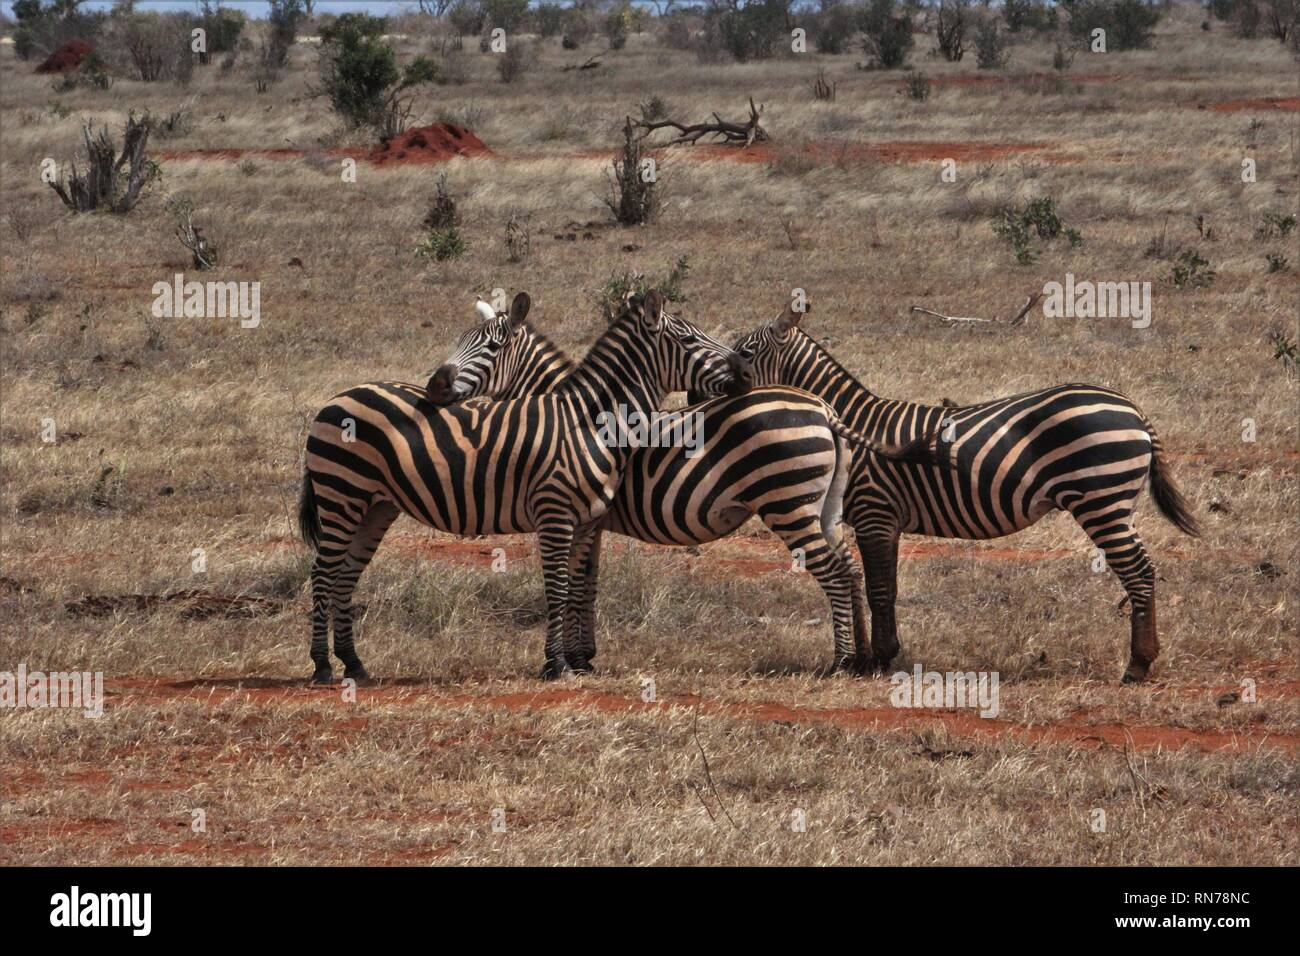 Mutual skin-cleaning of Grant Zebras in the laterite-red savannah of Tsavo East National Park, Kenya. - Stock Image